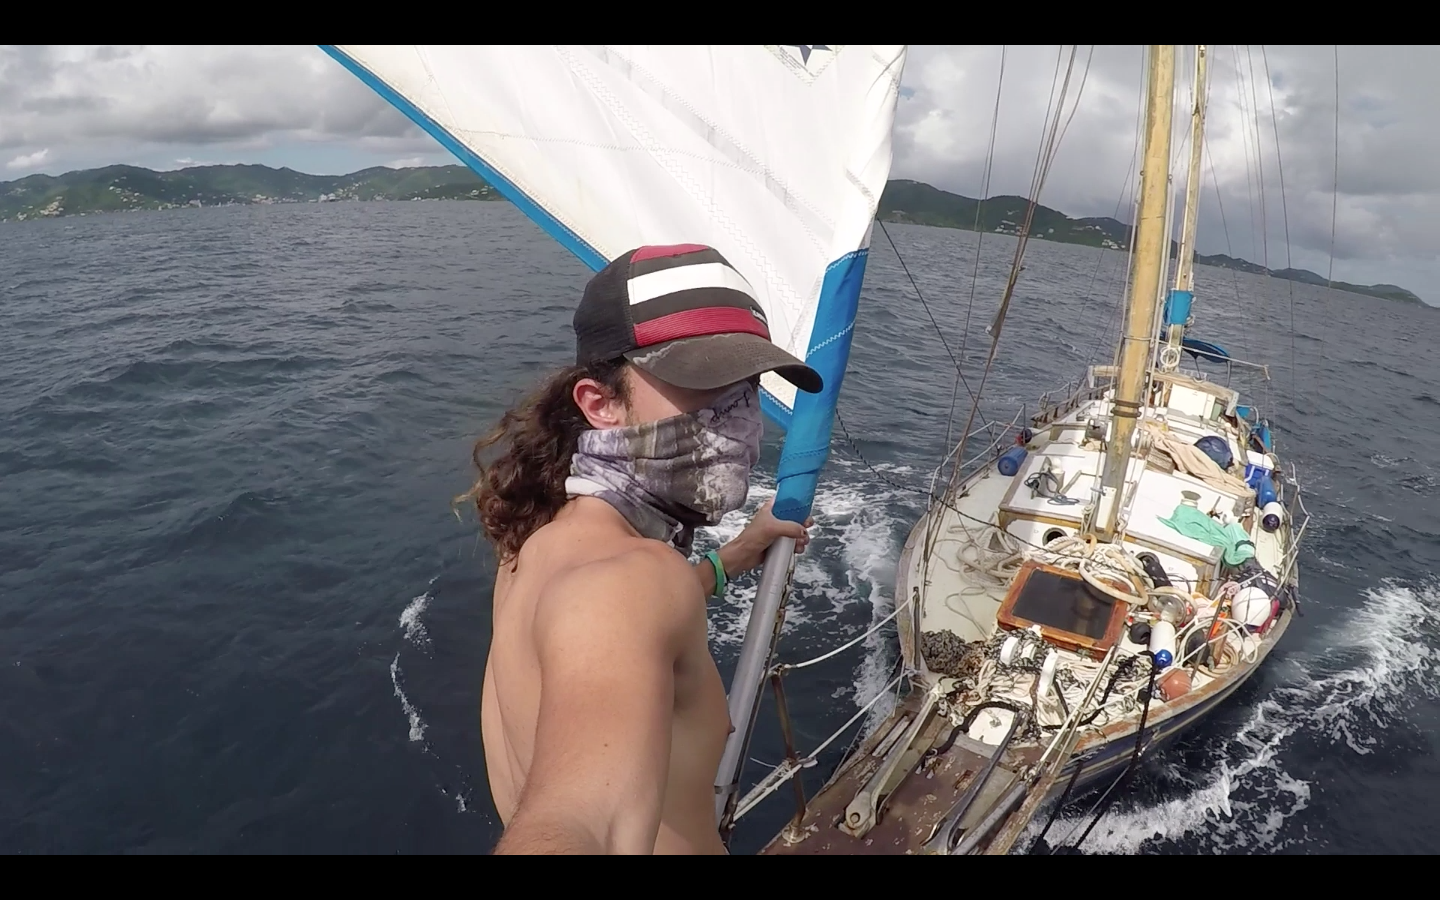 Brandon Bowe - Sailboat selfie